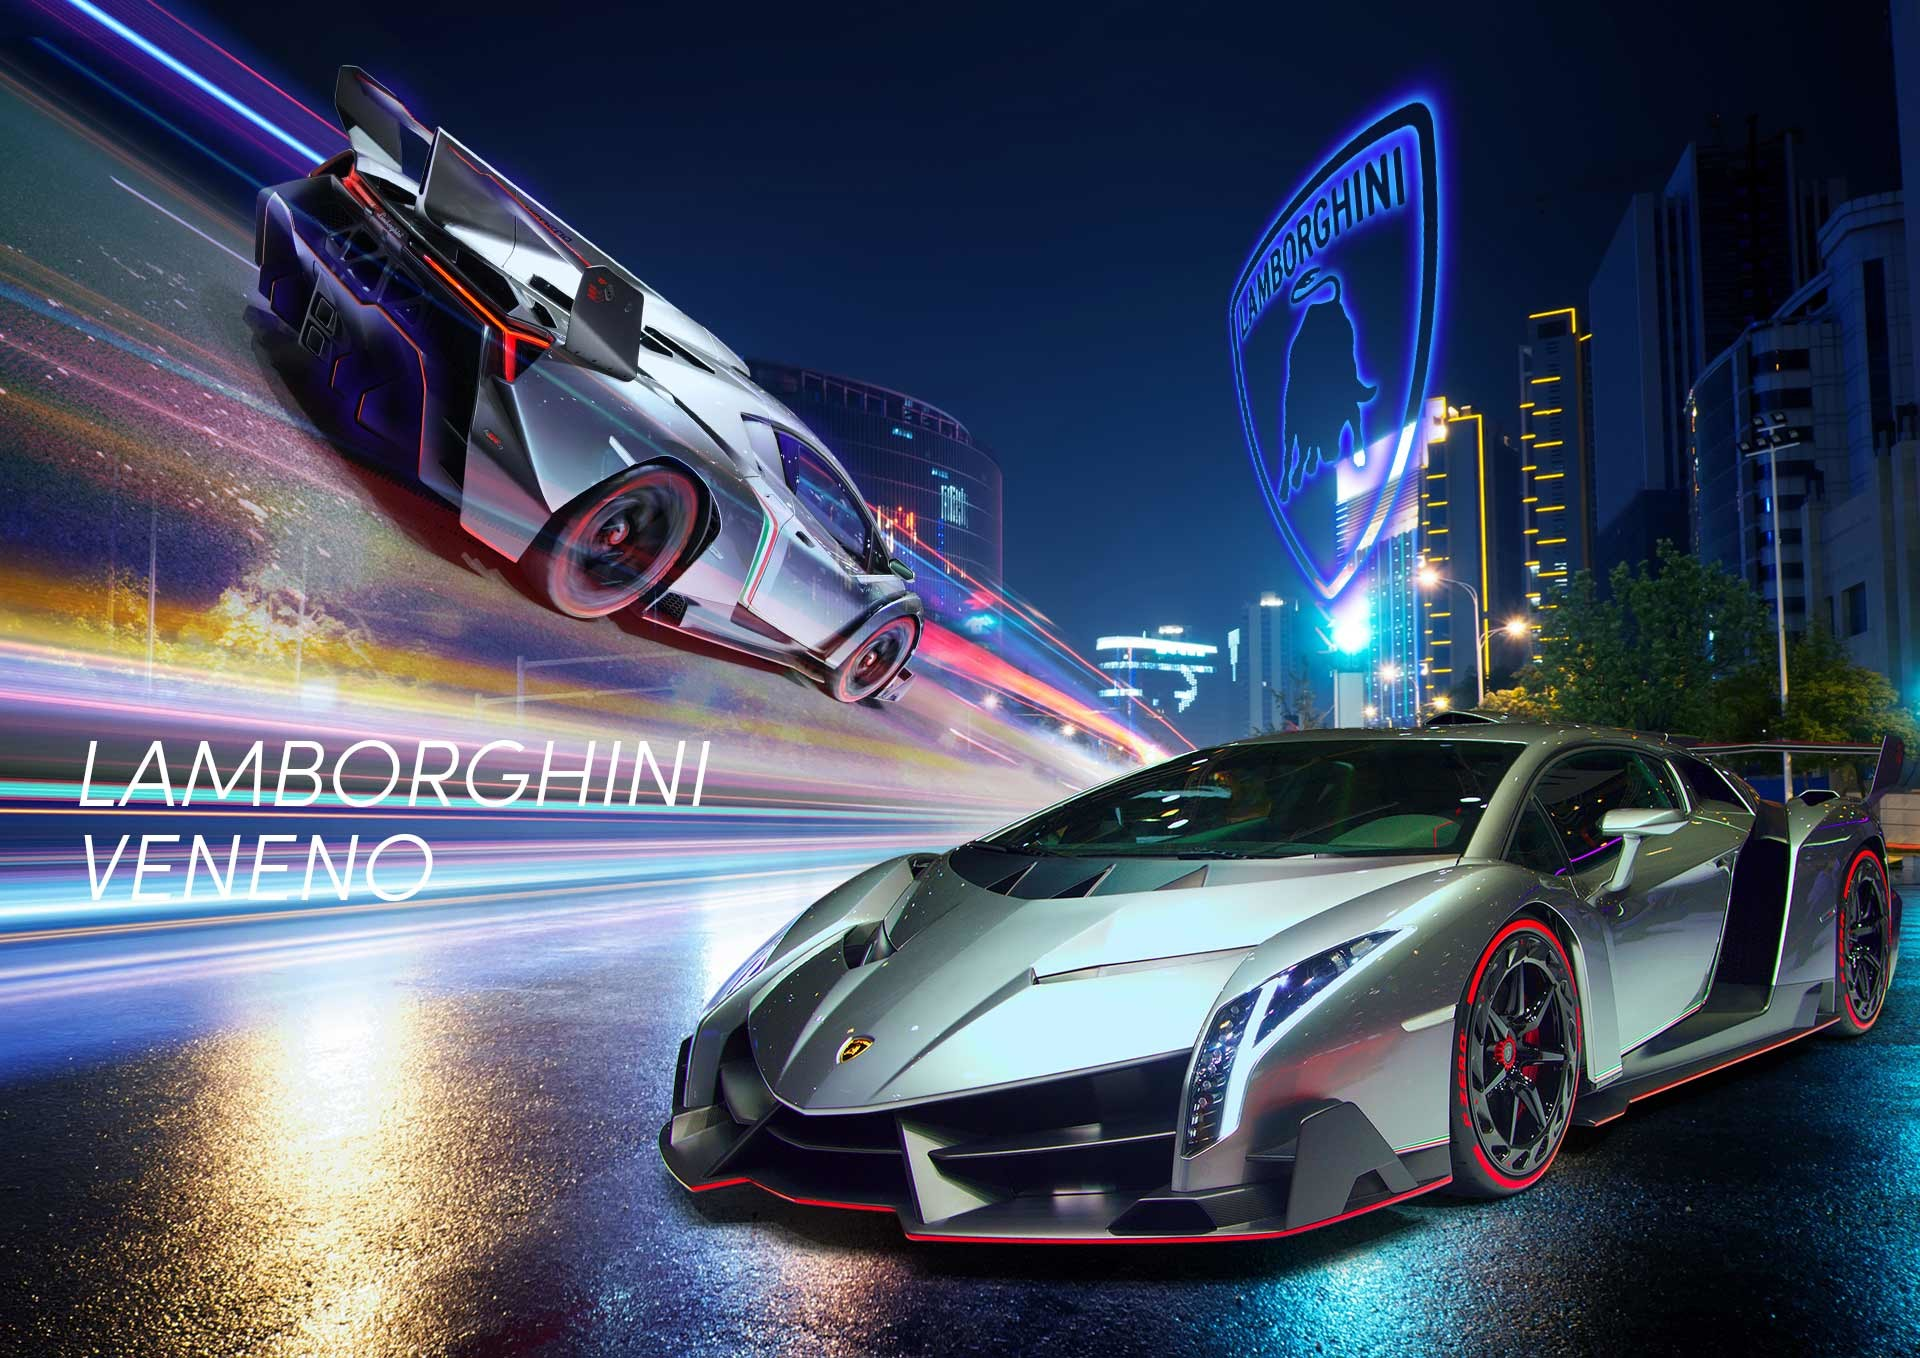 Lamborghini Veneno Wallpaper City Street, Night